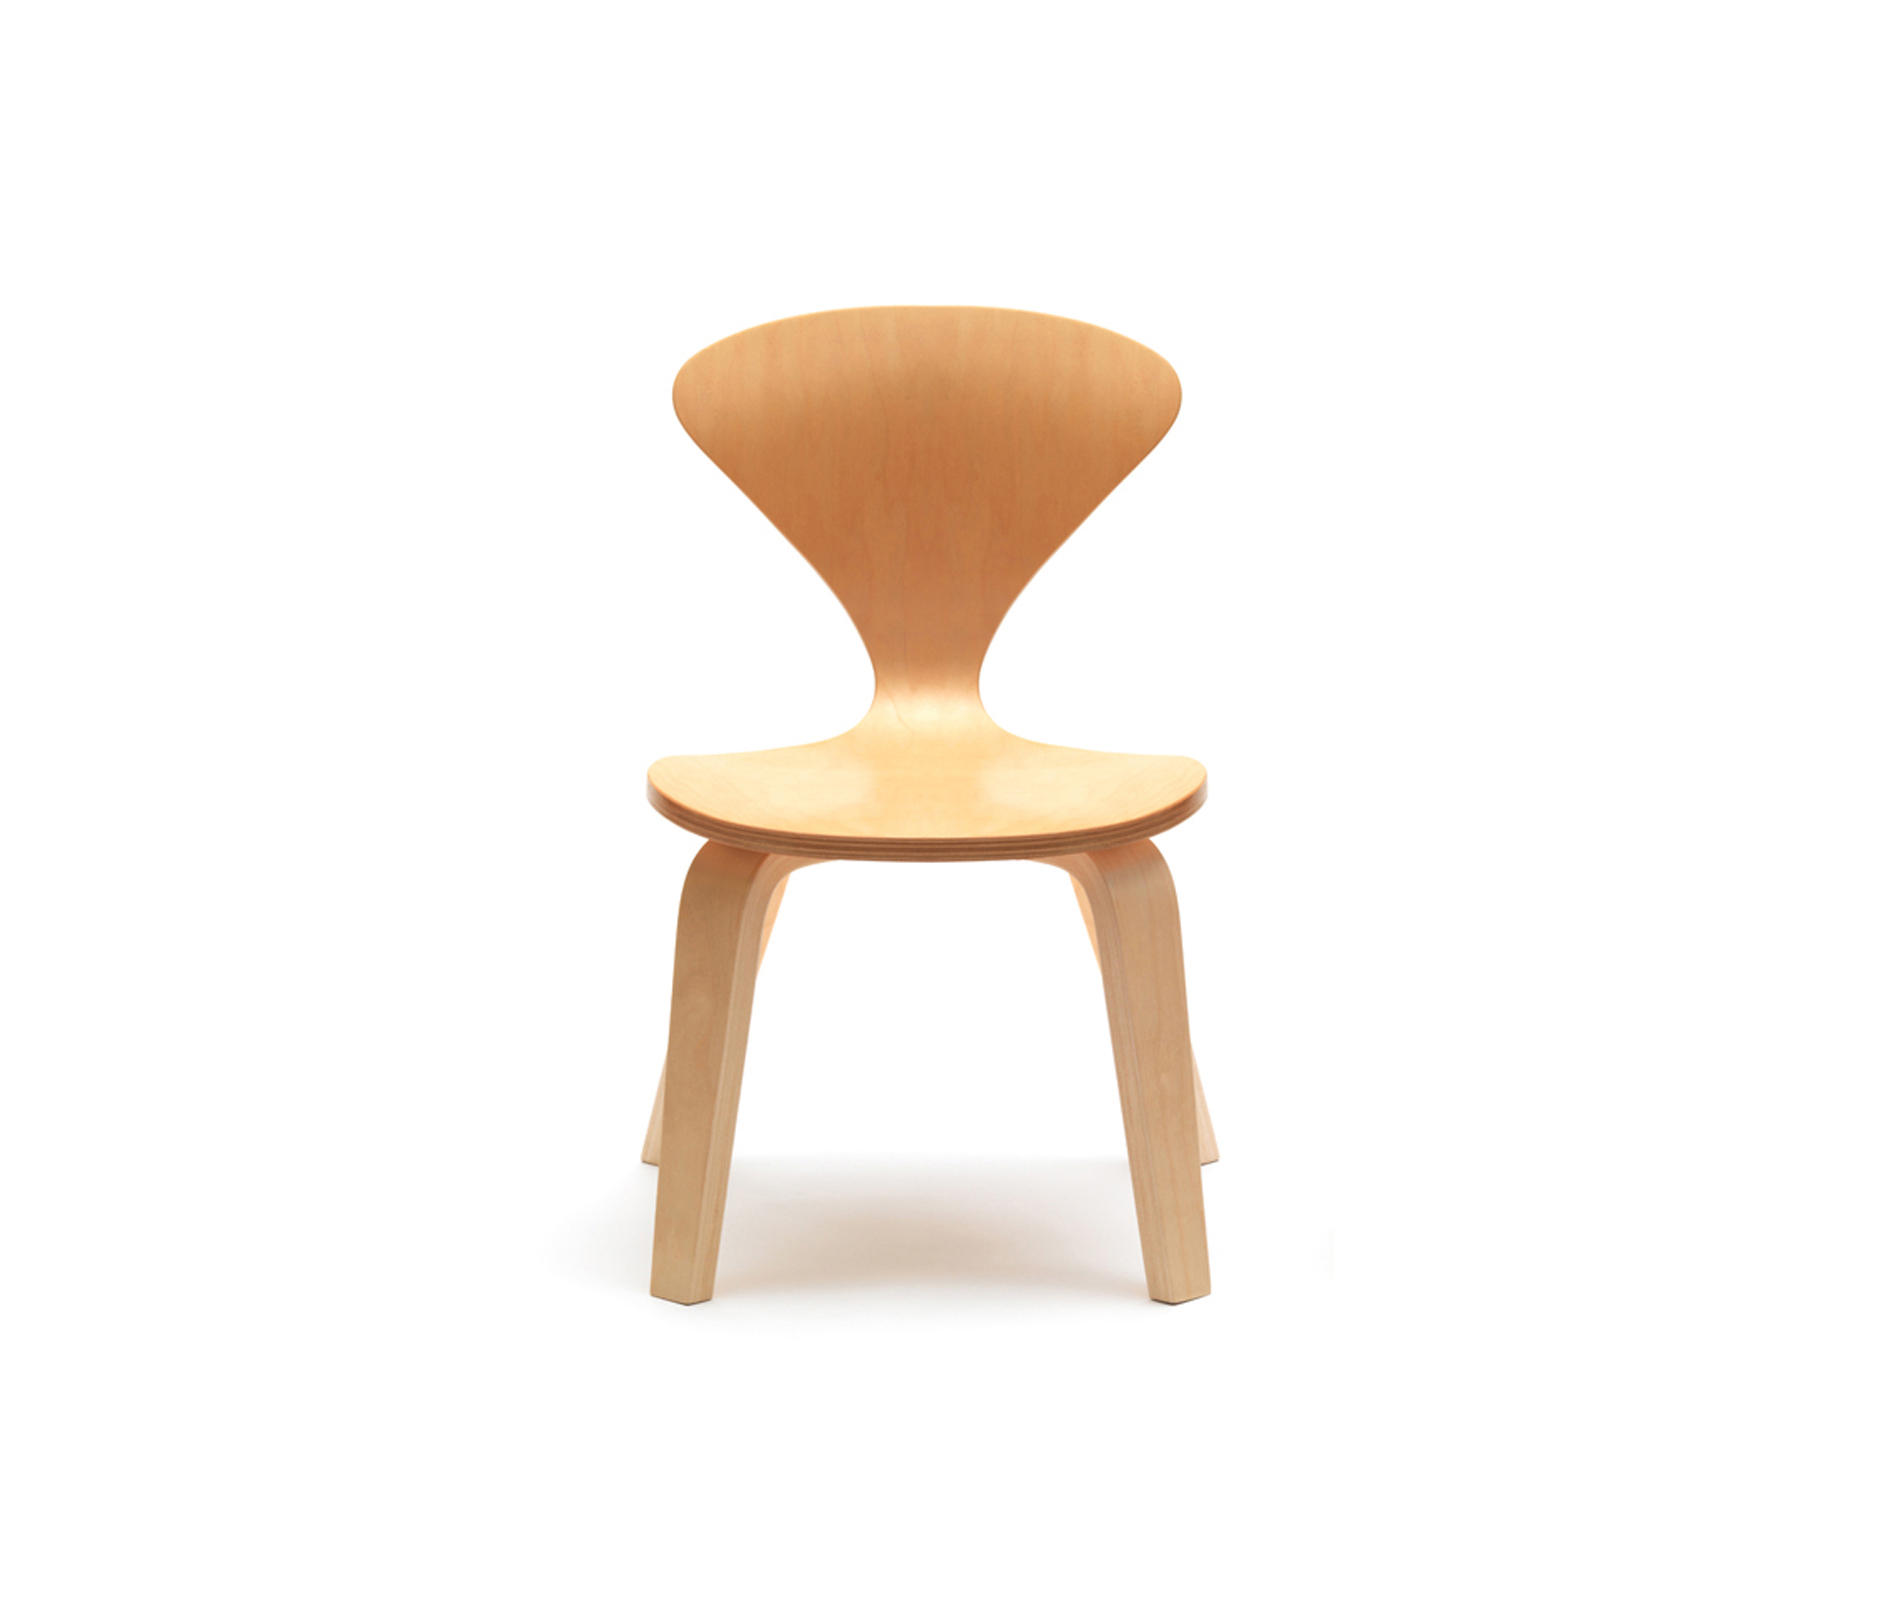 Cherner Childrens Chair By Cherner | Kids Chairs ...